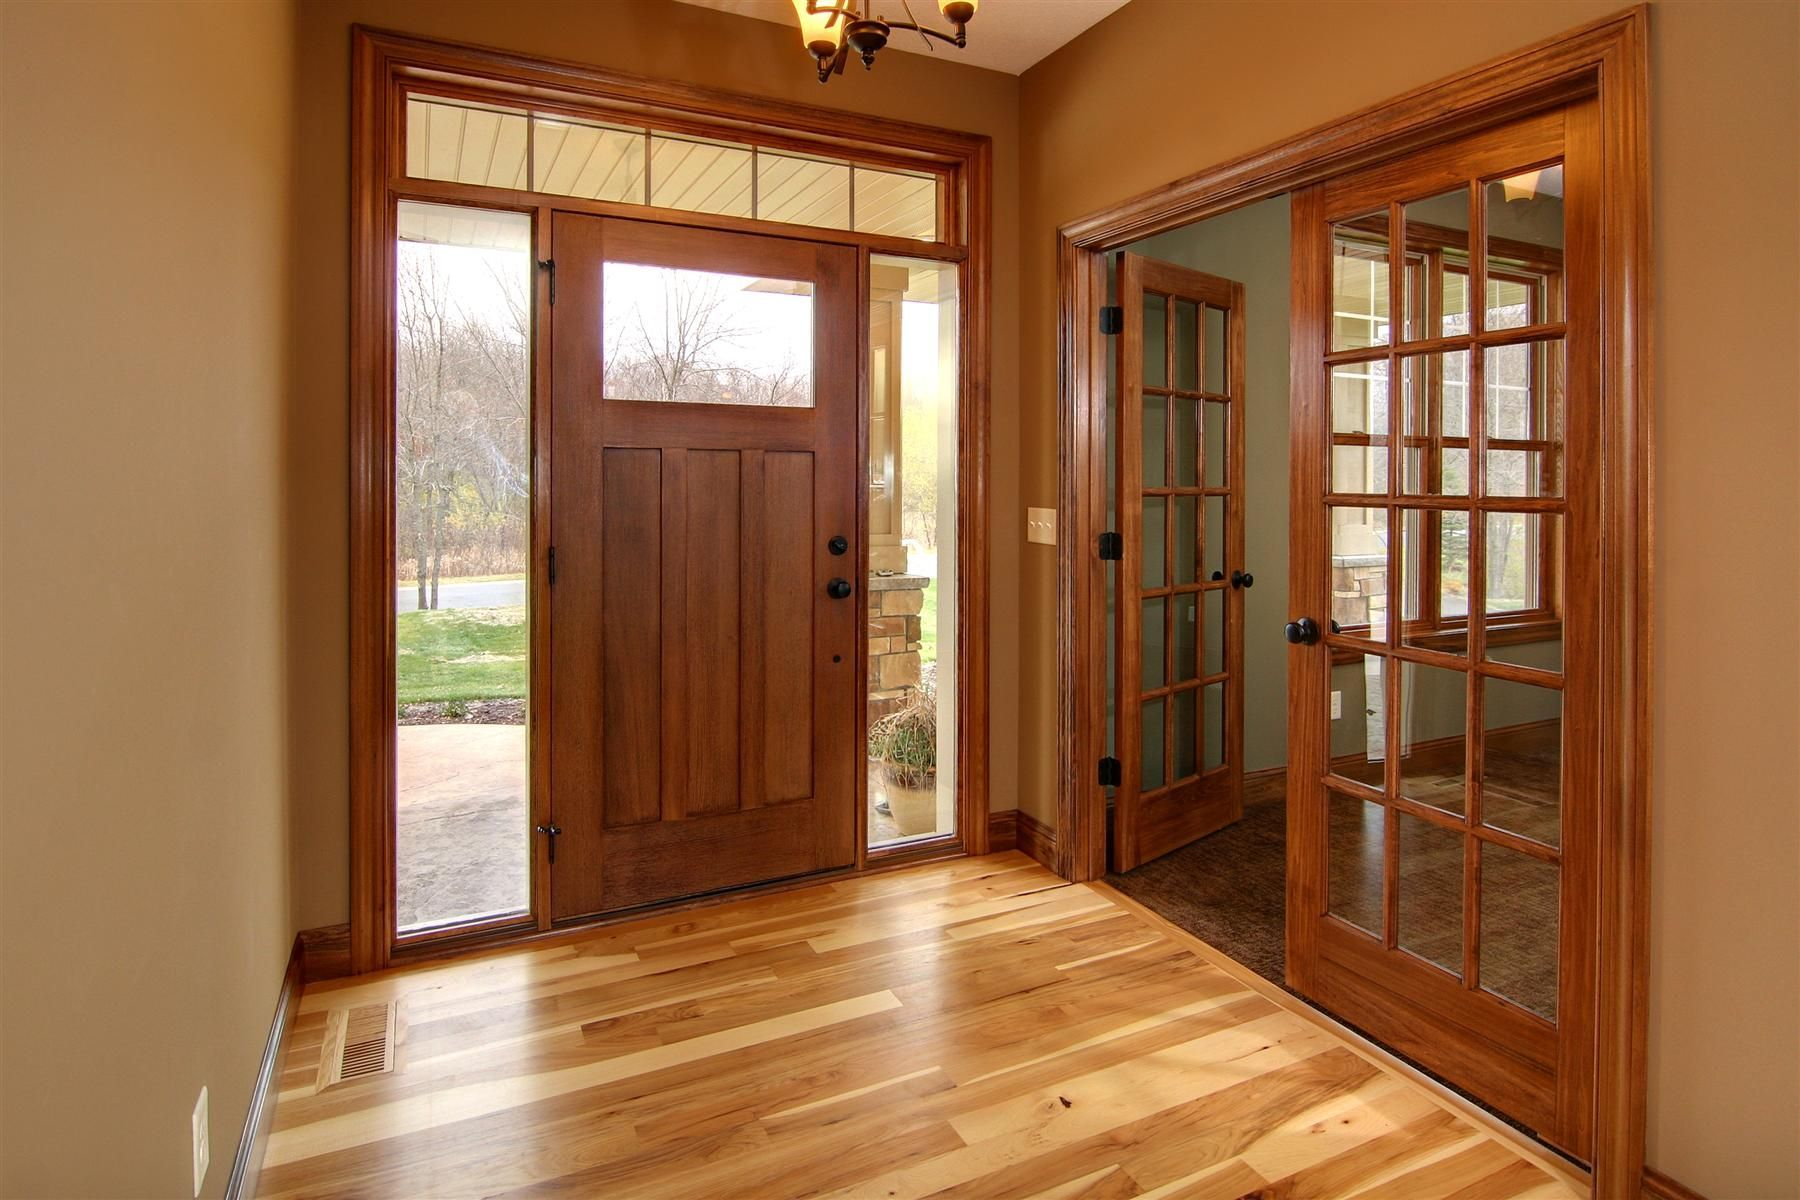 Hickory Floor Cherry Stained Doors And Trim Stained Wood Trim Dark Wood Trim Oak Trim